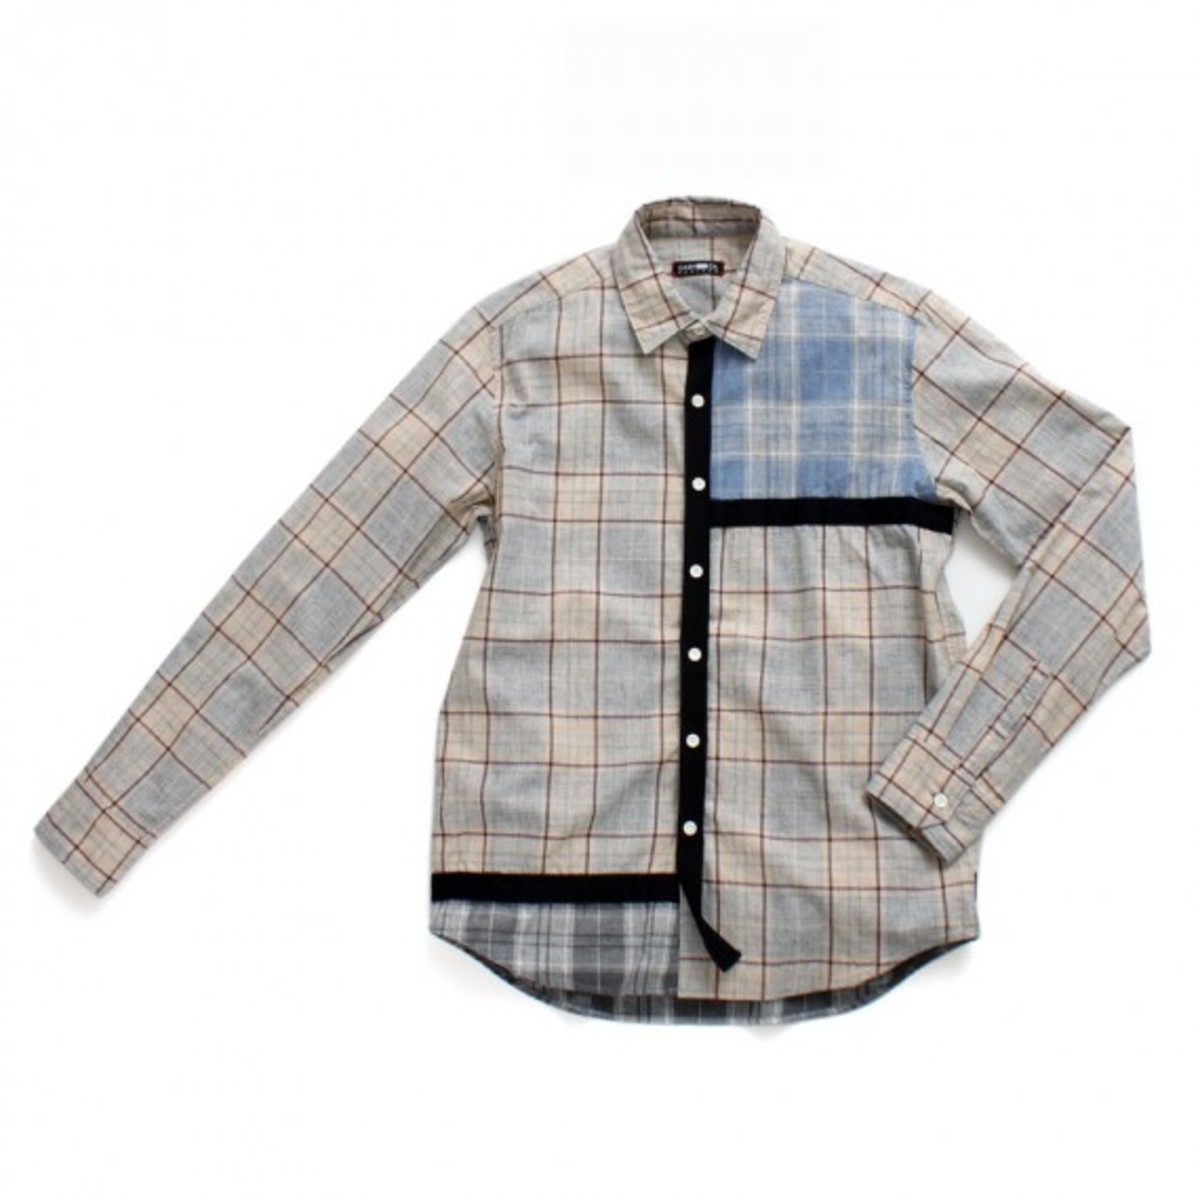 cash-ca-spring-summer-2012-mondrian-madras-shirt